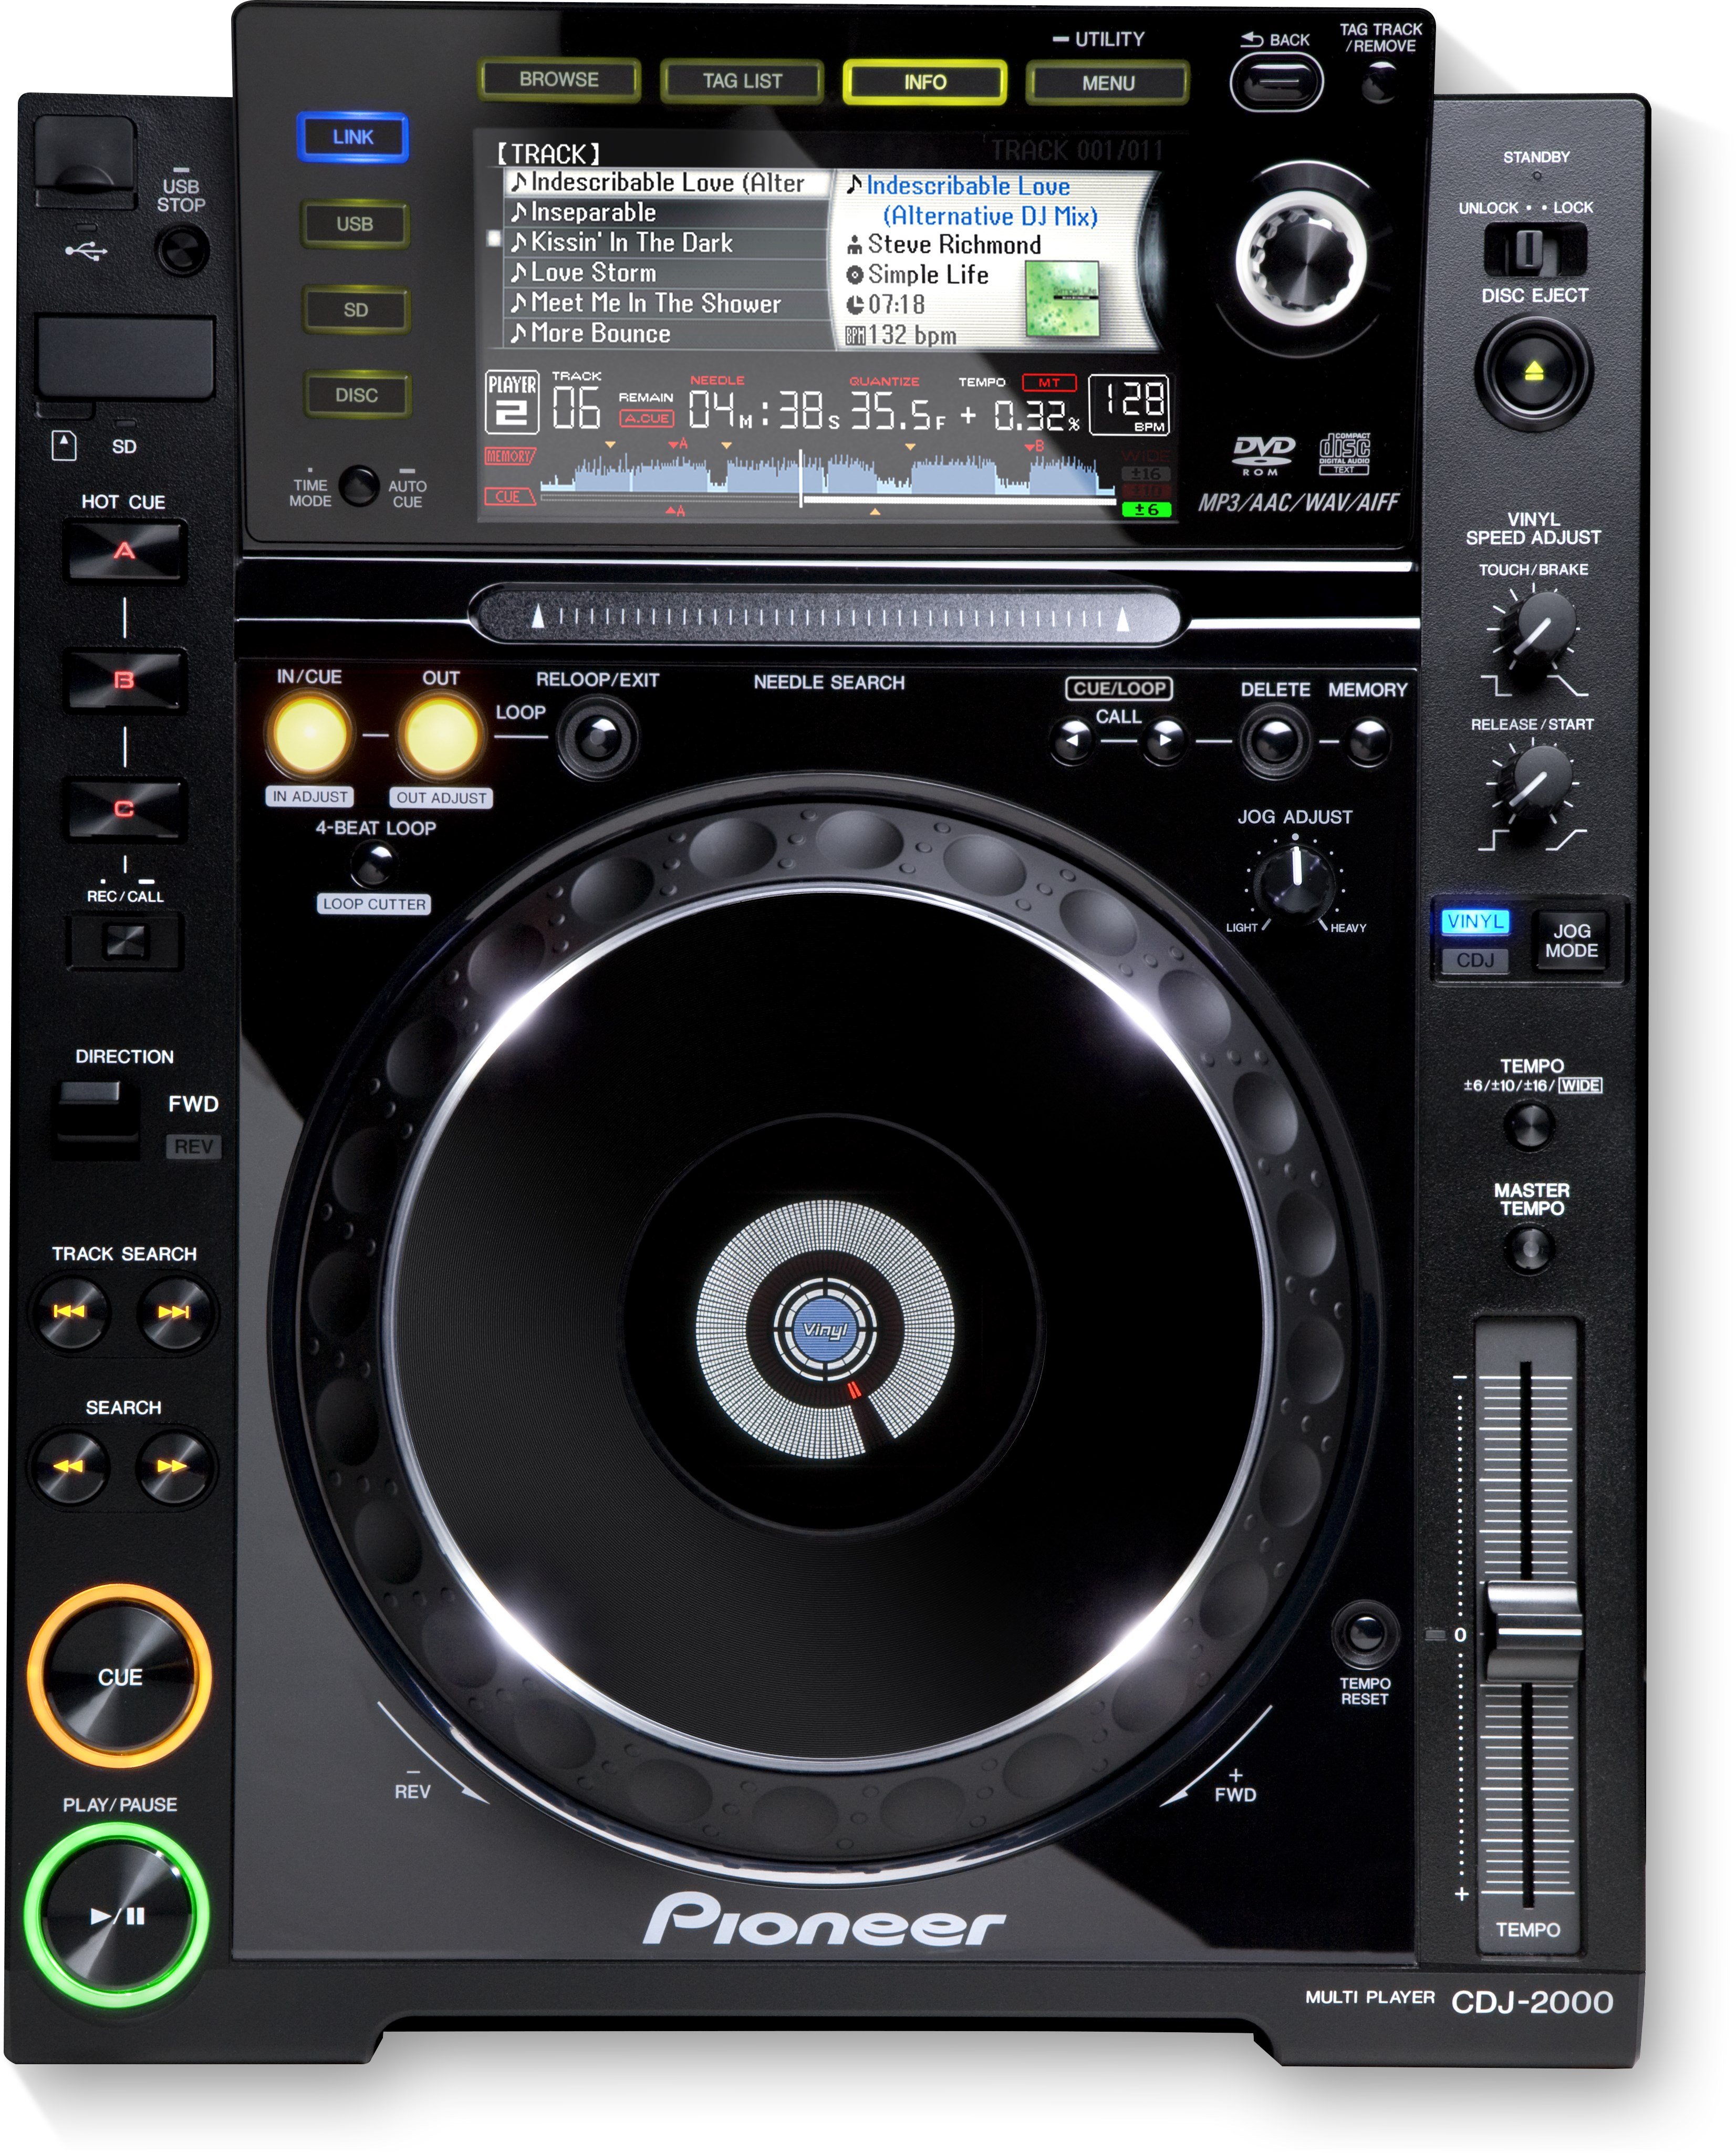 download firmware or software for cdj 2000 pioneer dj global english website. Black Bedroom Furniture Sets. Home Design Ideas